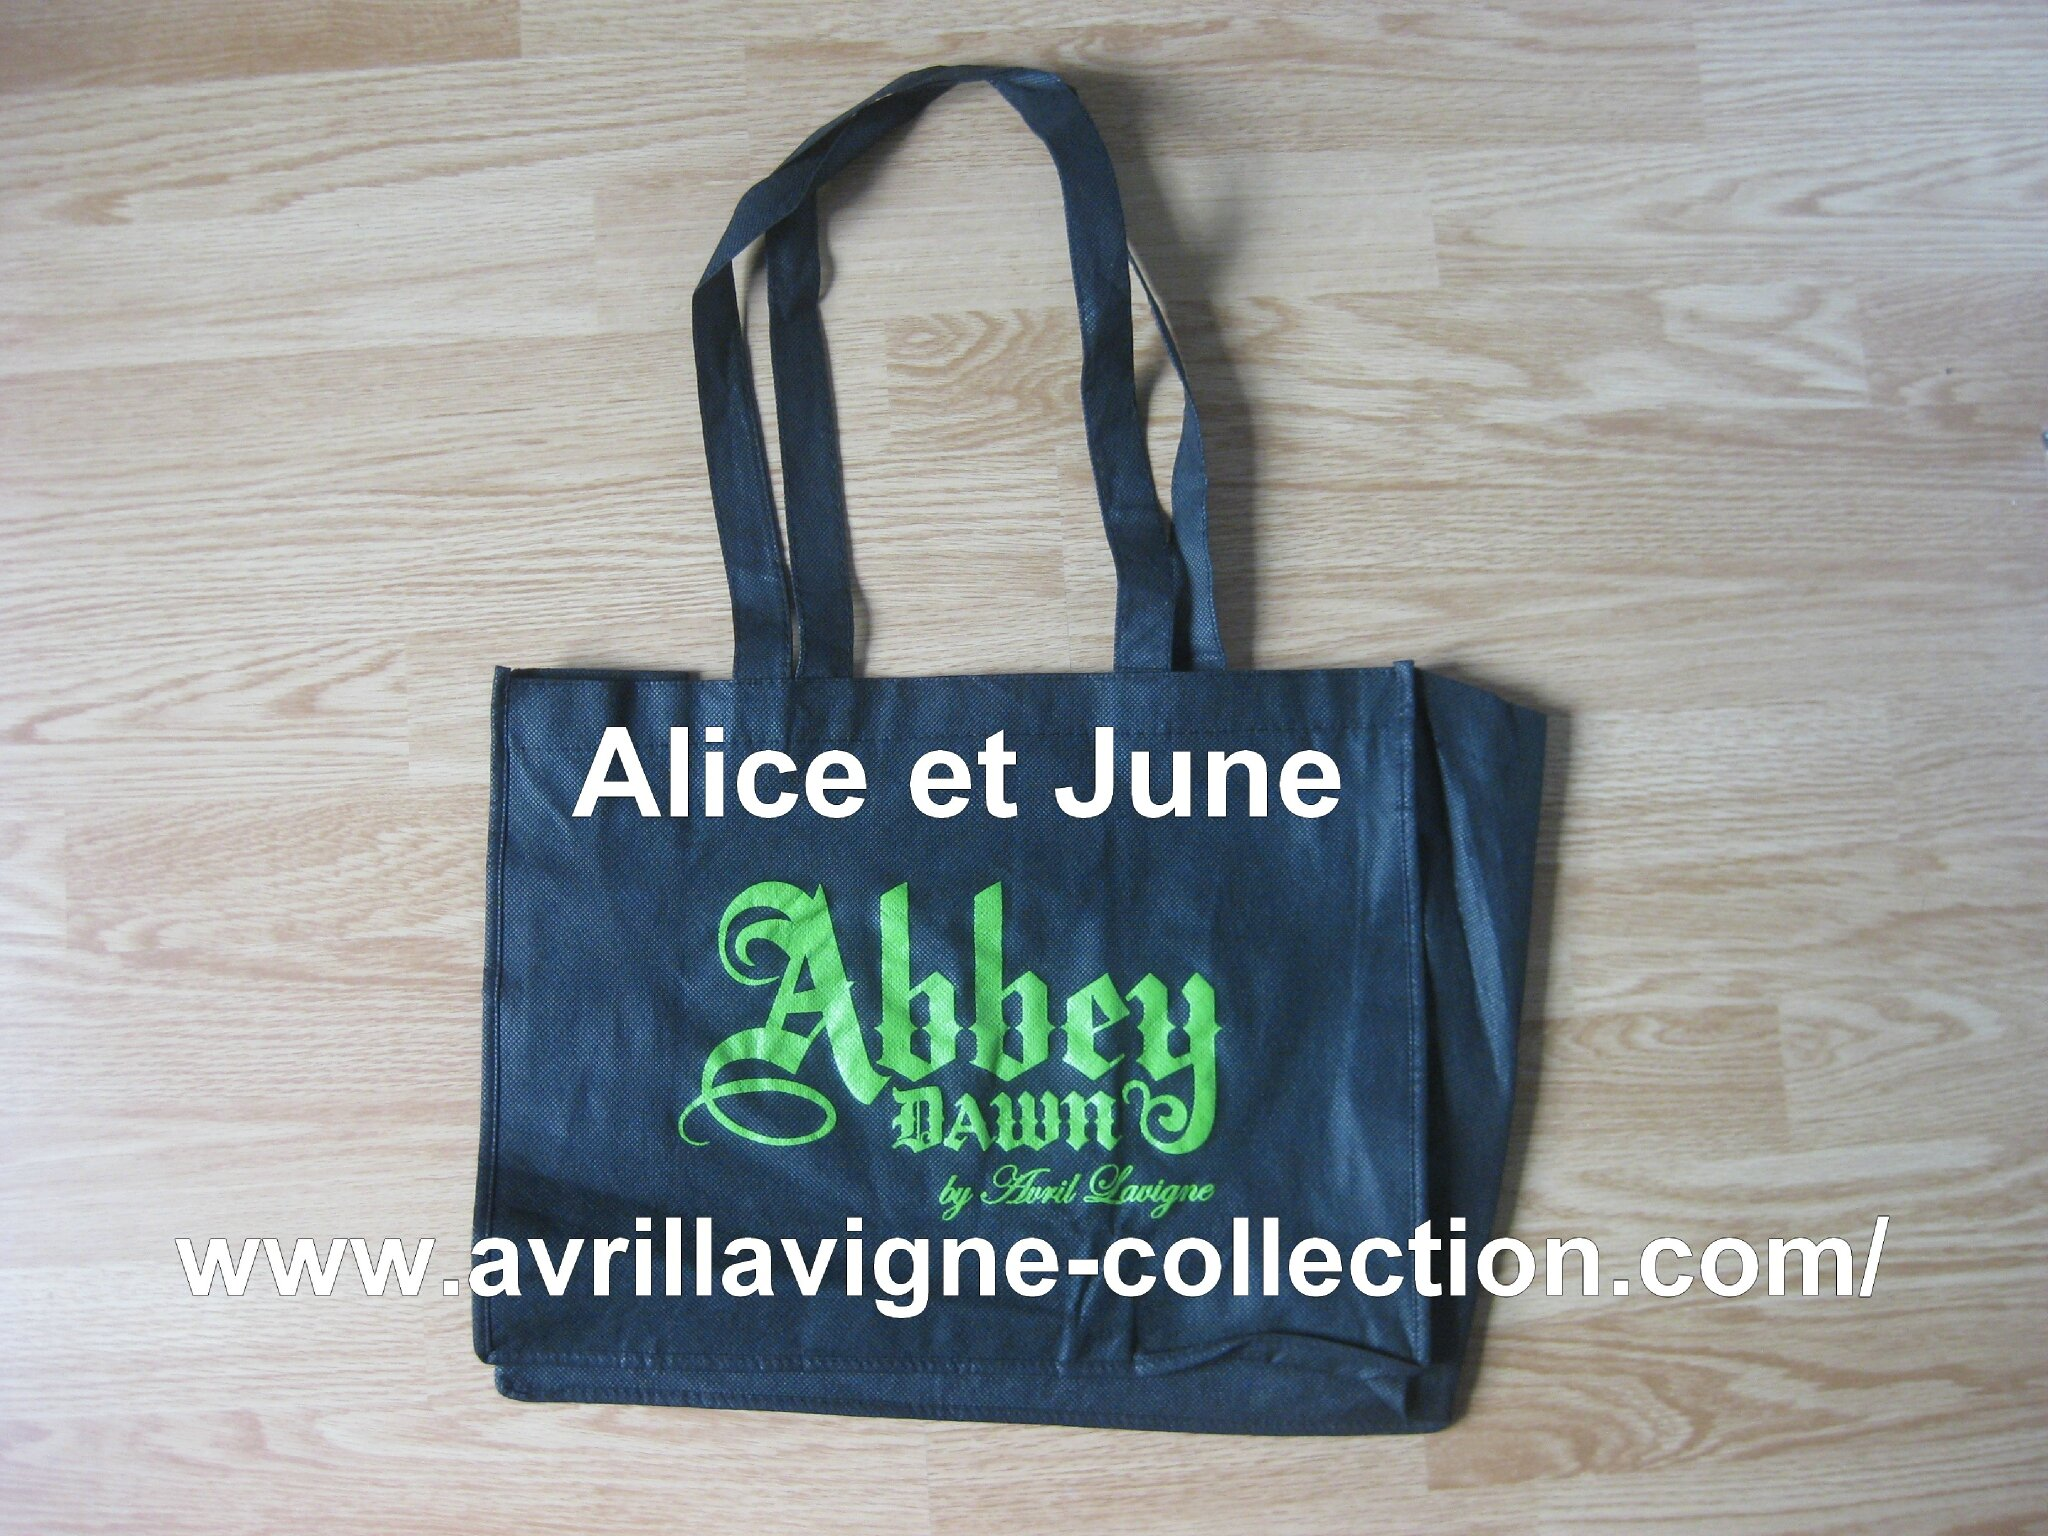 Sac promotionnel Abbey Dawn Pologne (2012)